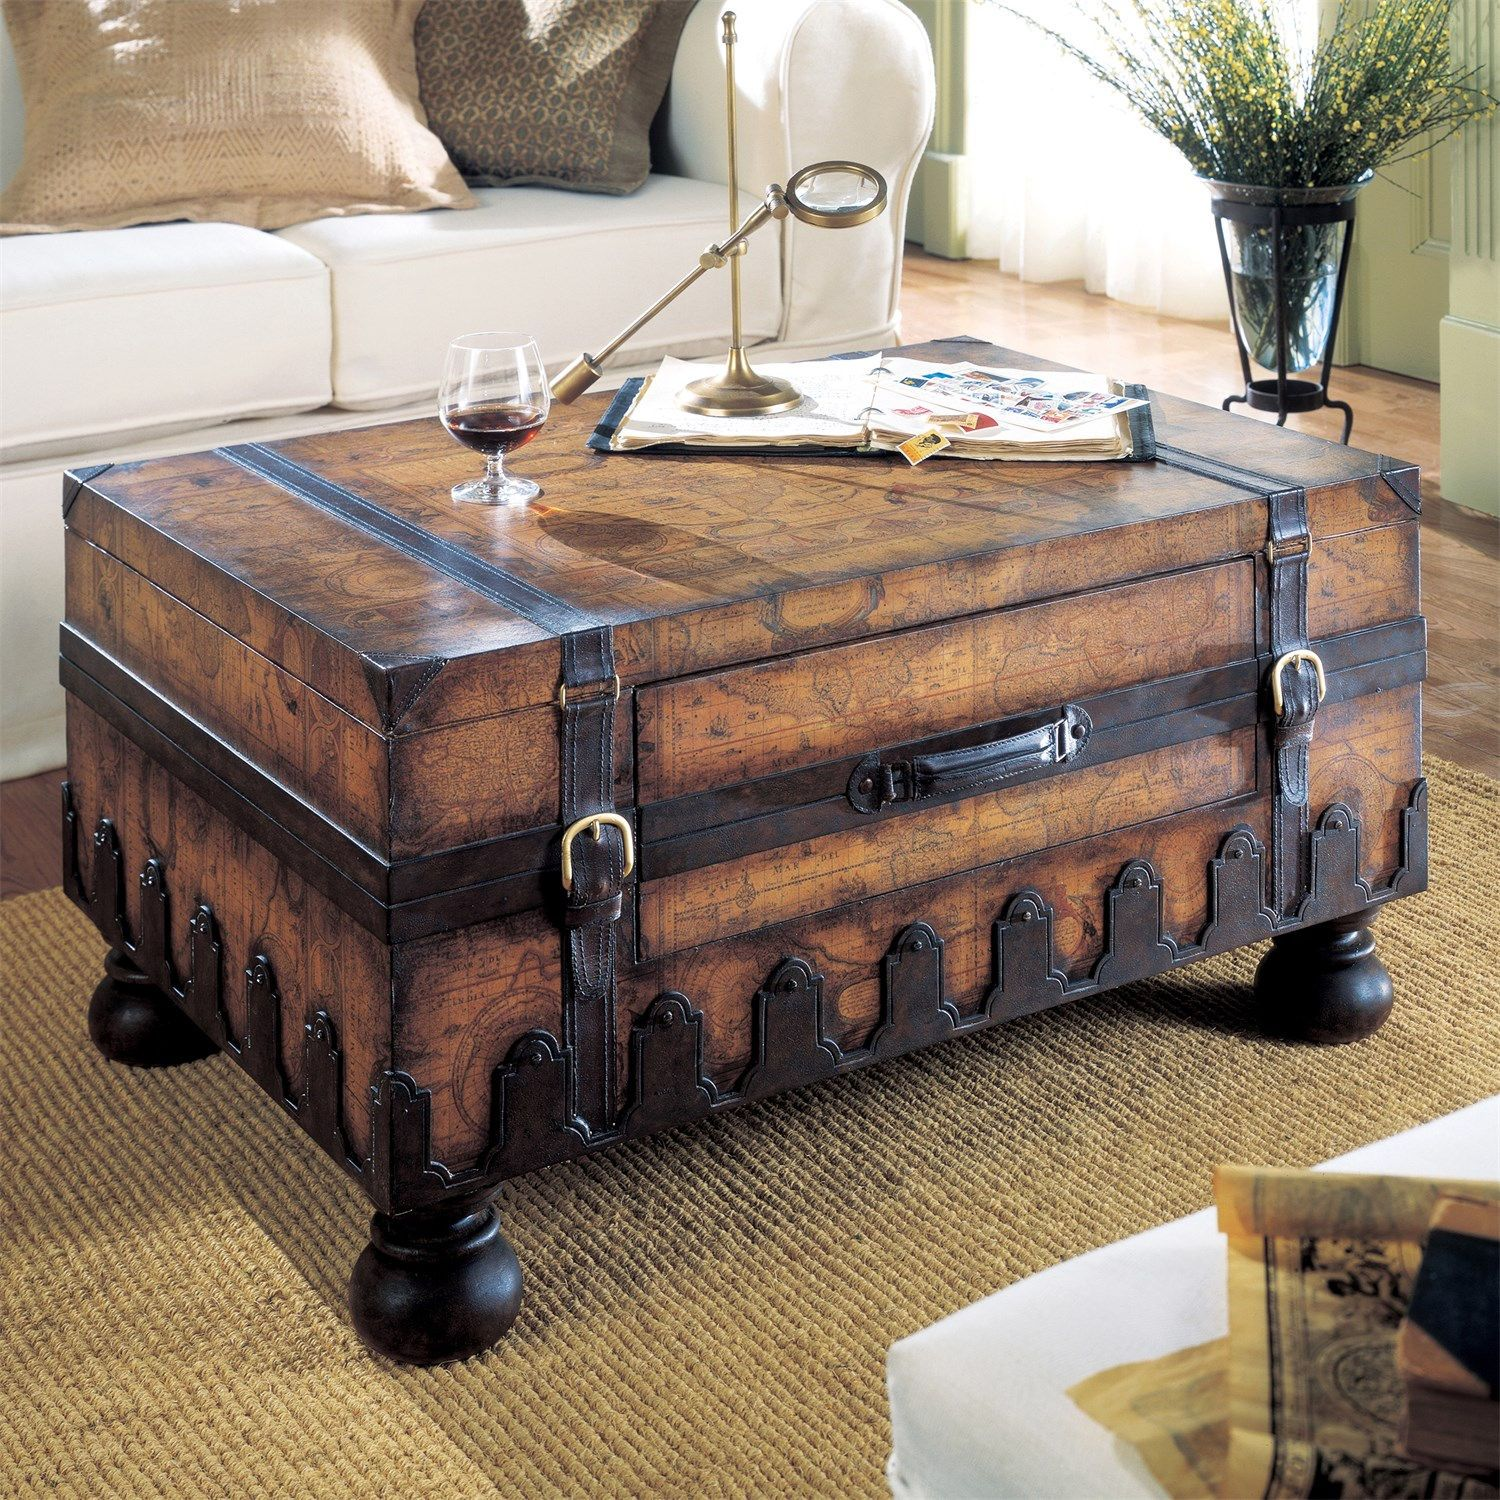 butler 0576070 heritage trunk table | trunk table